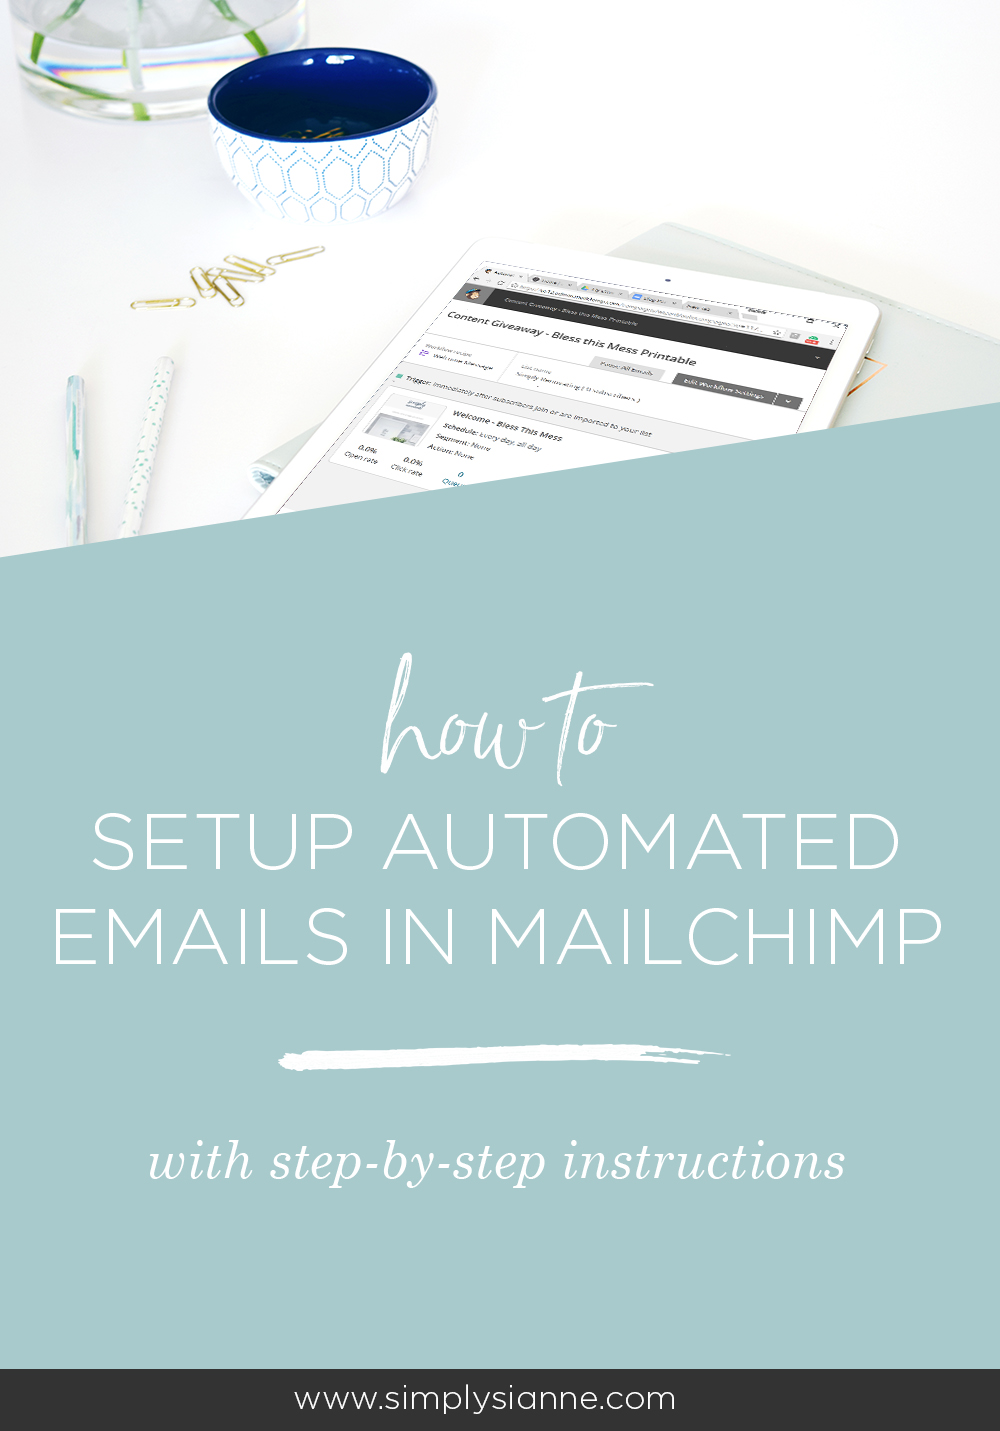 Build your email list and automate your campaigns. Learn how to setup Mailchimp automation campaigns with step-by-step instructions.